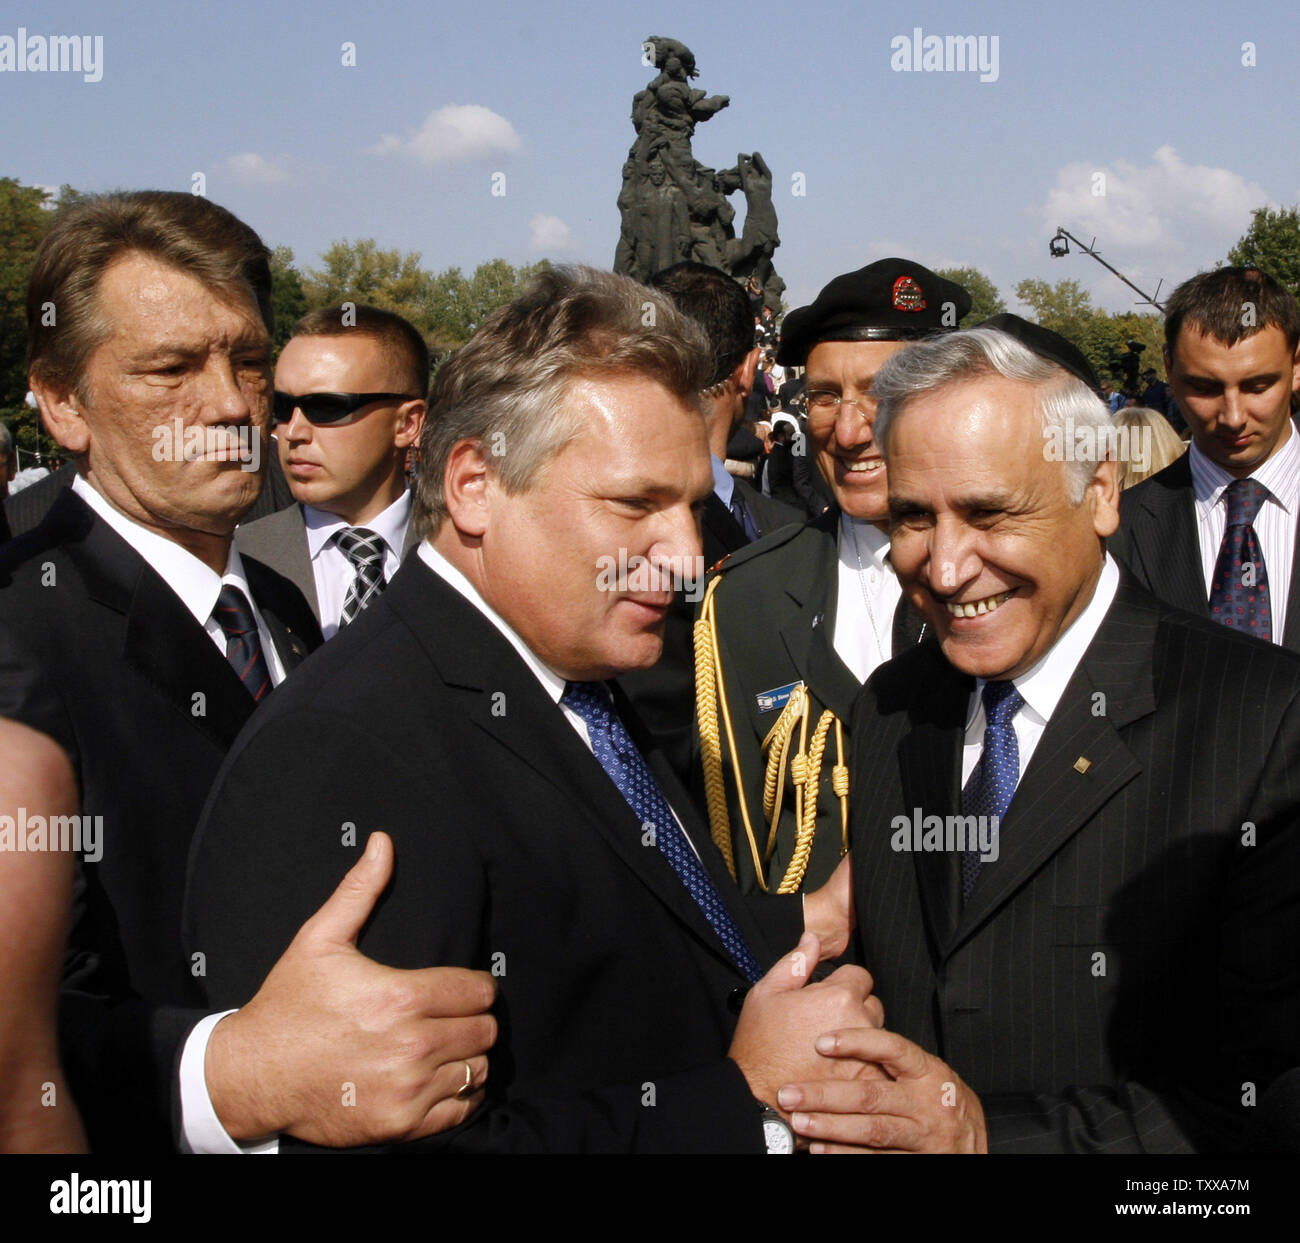 Ukraine's President Viktor Yushchenko (L), former Polish President Alexander Kwasniewski and Israeli President Moshe Katsav (R) talk after a wreath laying ceremony at a monument commemorating the victims of the Nazi massacre in Babiy Yar, in Kiev on September 27, 2006. Ukraine marks this week the 65th anniversary of the Babiy Yar tragedy where tens of thousands Jews were killed by Nazis.  (UPI Photo/Sergey Starostenko) - Stock Image